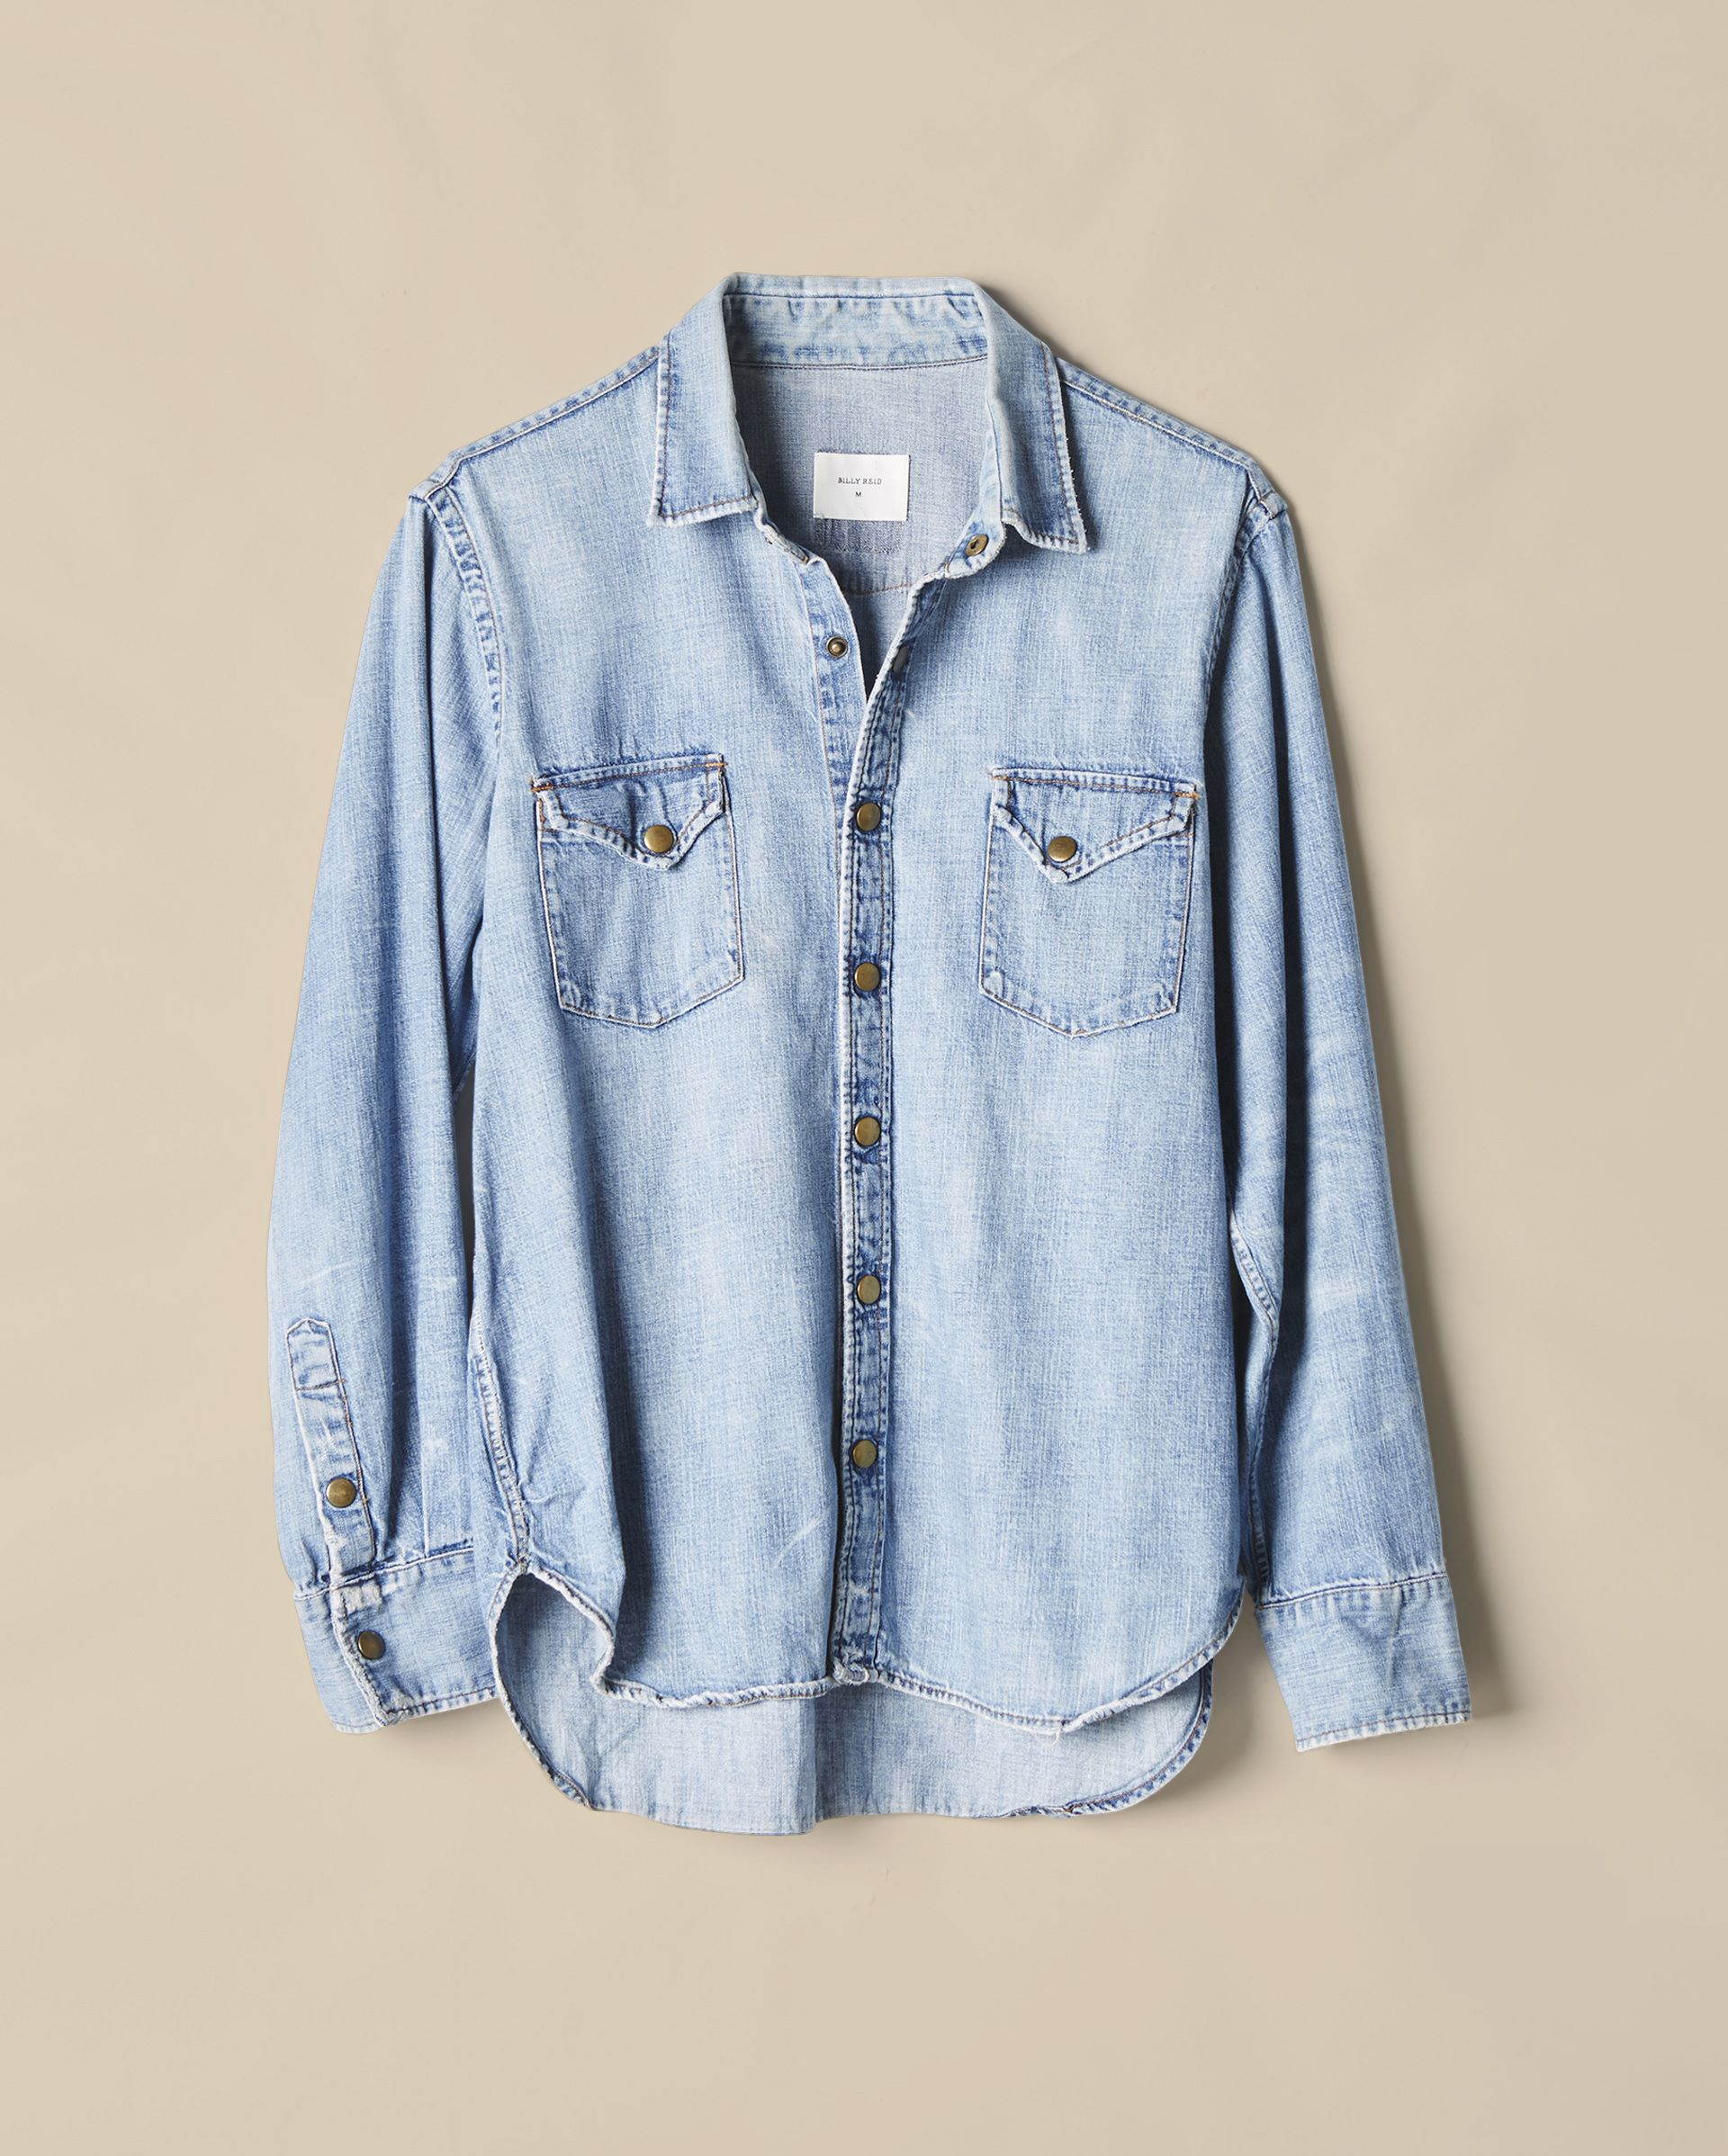 Billy Reid - Distressed Shirt - Denim Wash